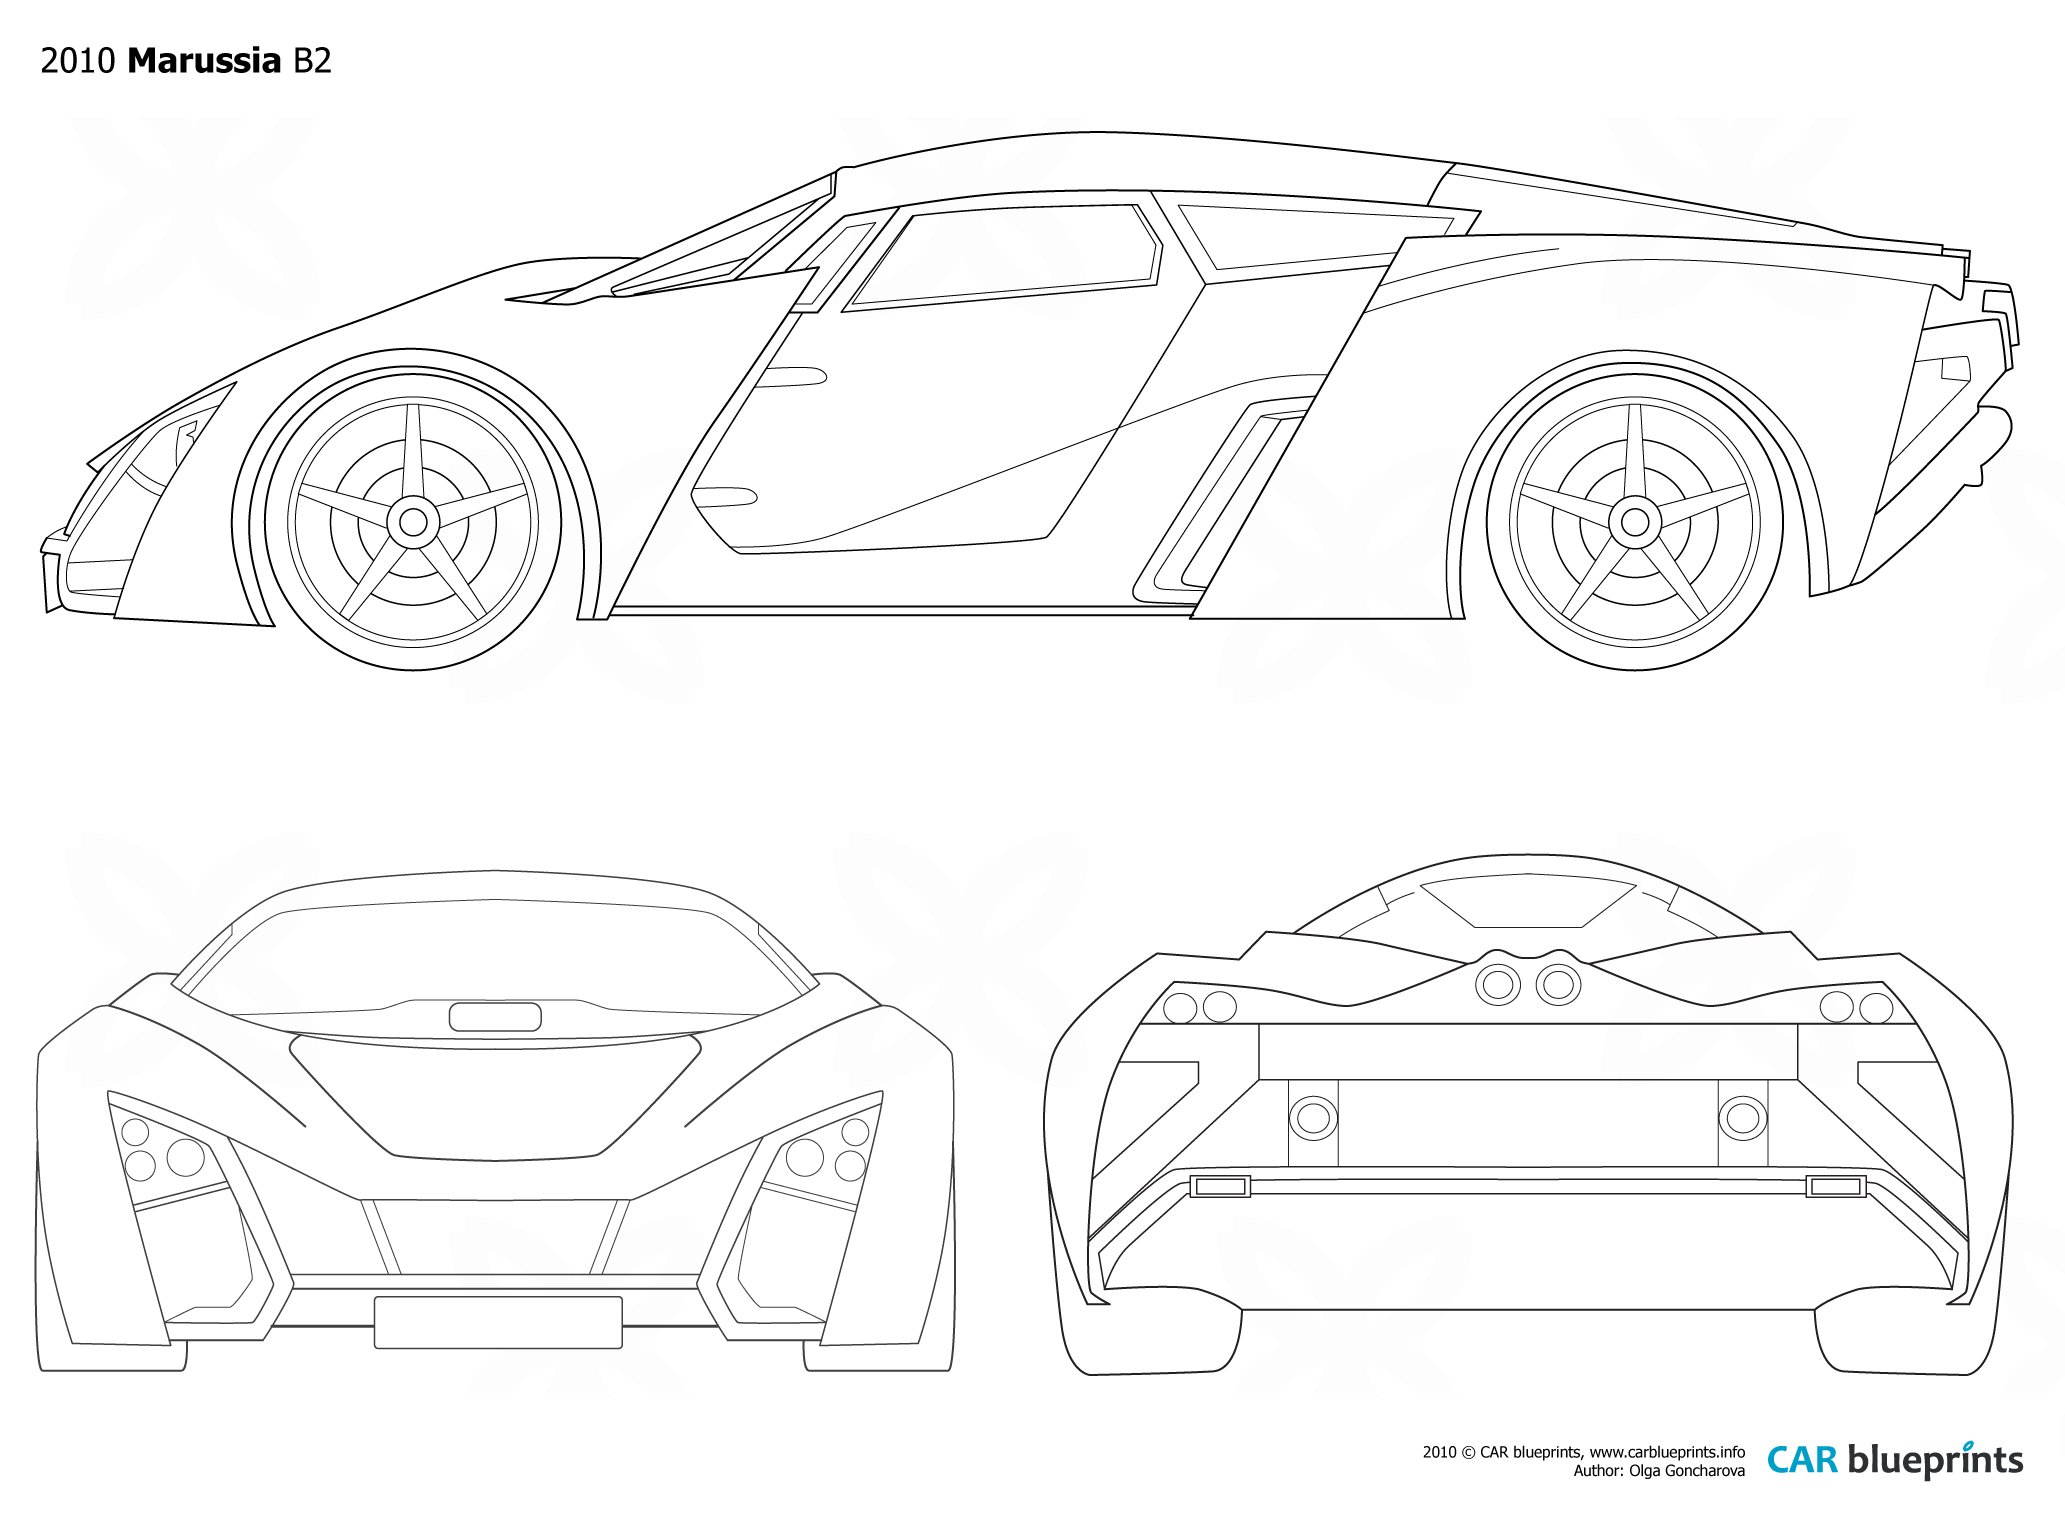 2010 marussia b2 coupe blueprints free outlines download or request vector blueprint malvernweather Image collections